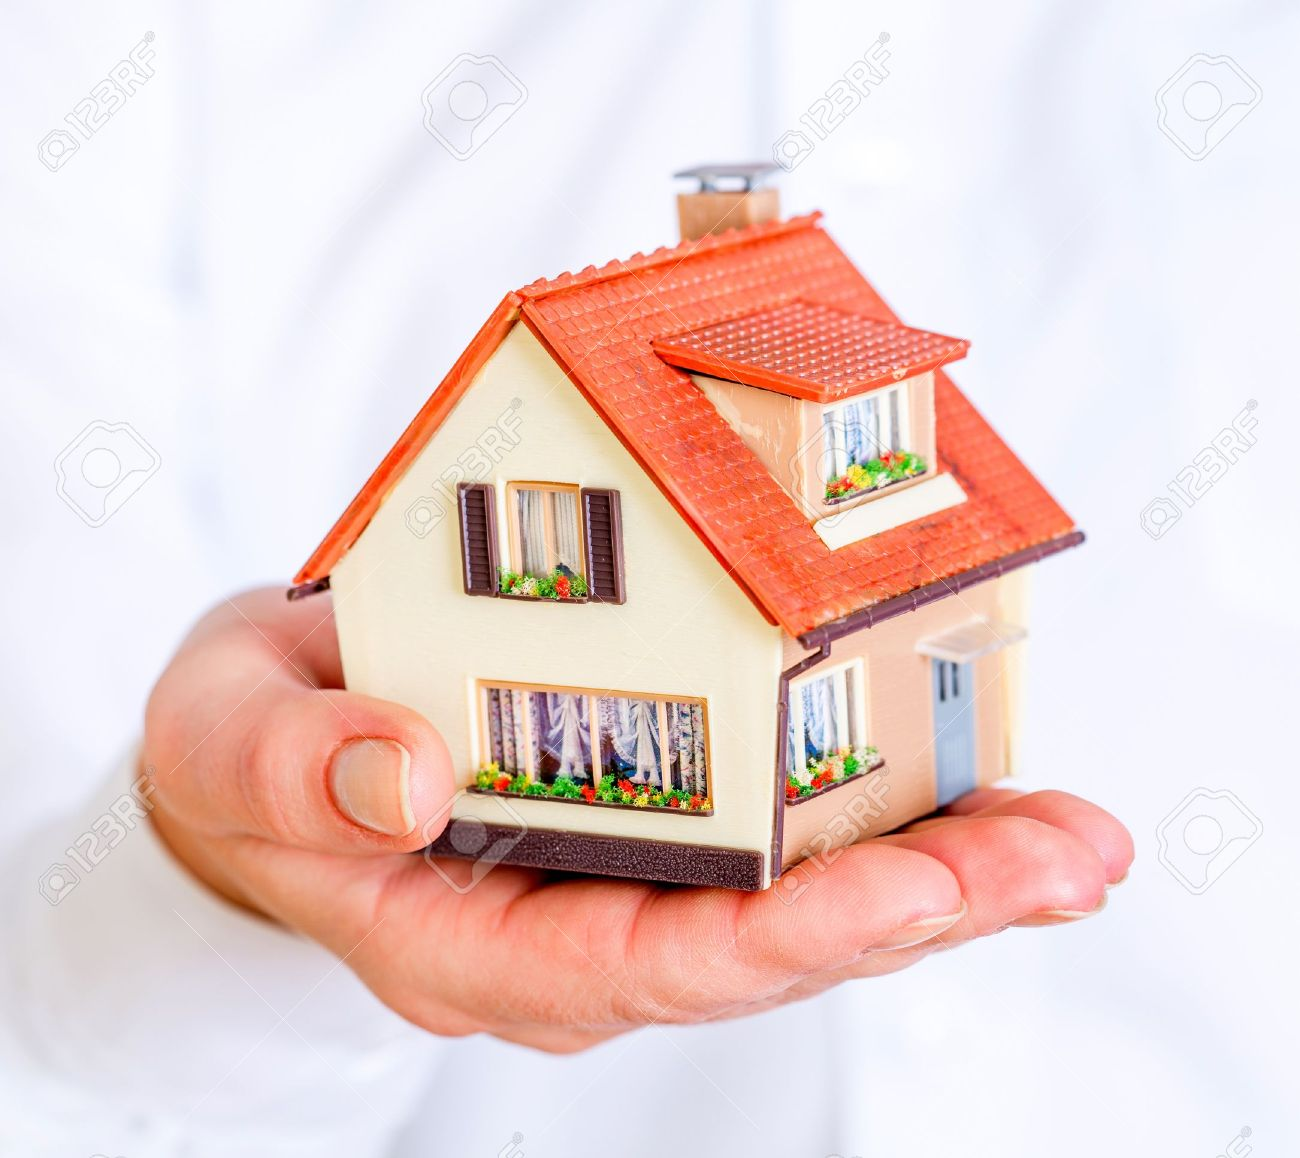 house in human hands on a white background Stock Photo - 18959899